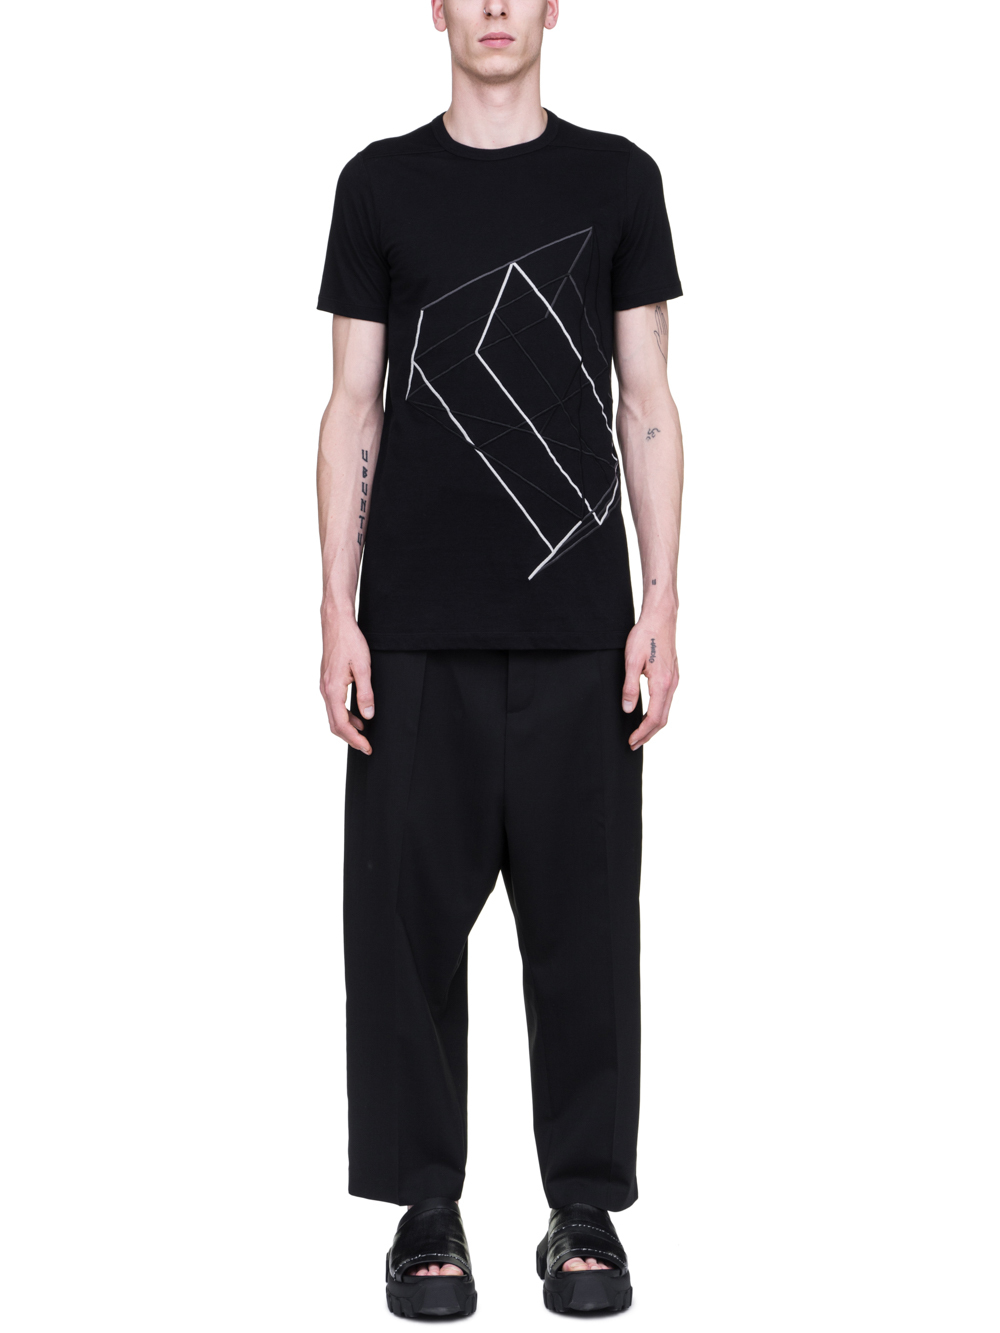 RICK OWENS SS19 BABEL LEVEL TEE IN BLACK COTTON